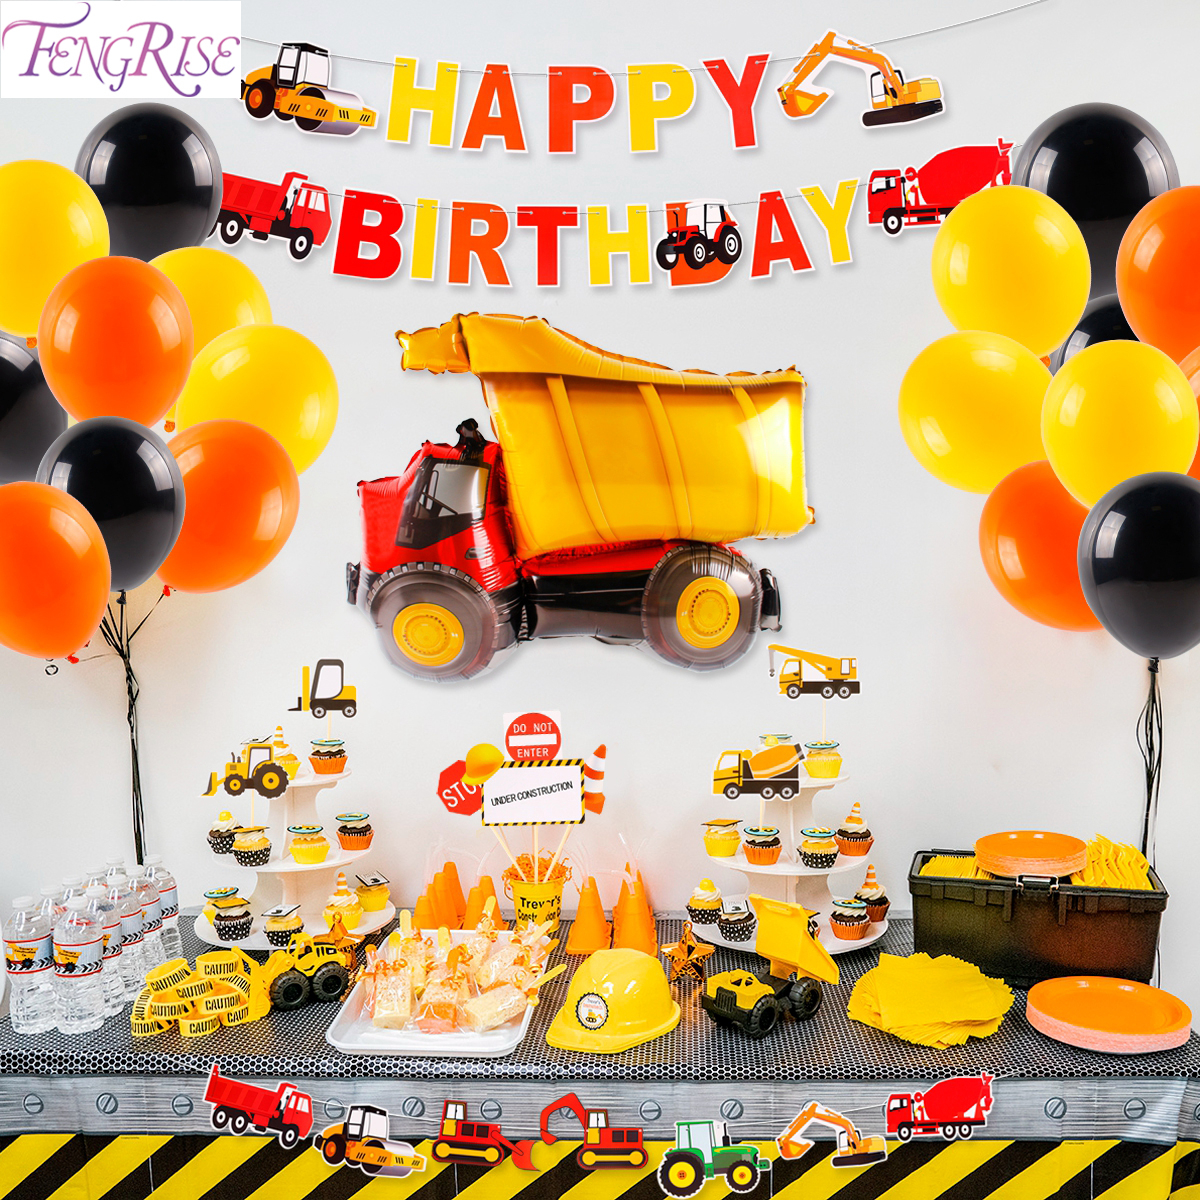 Construction Party Decorations Truck Party Car Birthday Decor Tractor Excavator Vehicle Construction Birthday Party Supplies Party Diy Decorations Aliexpress